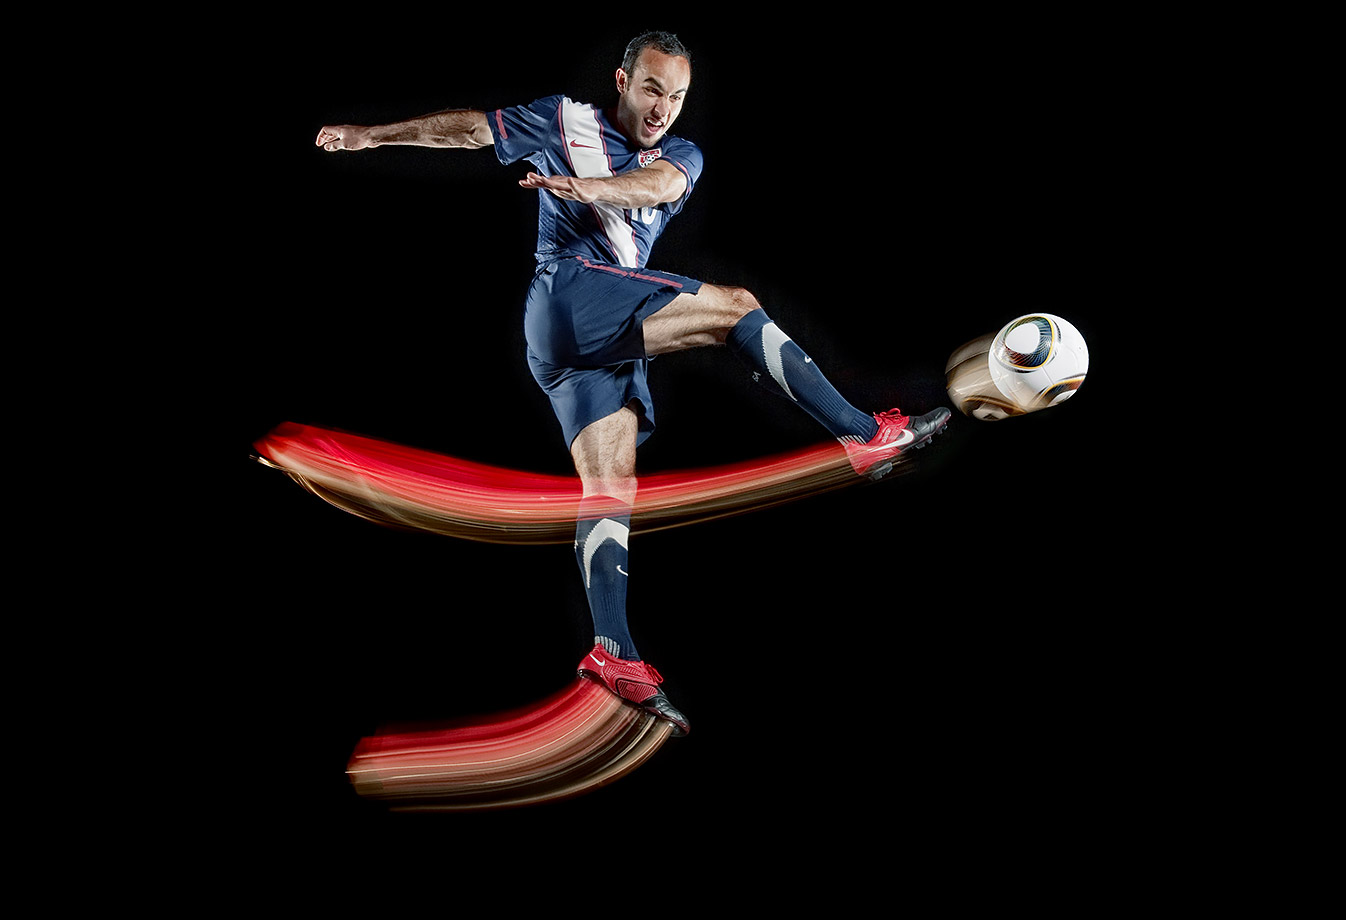 Landon Donovan during an SI For Kids photo shoot.